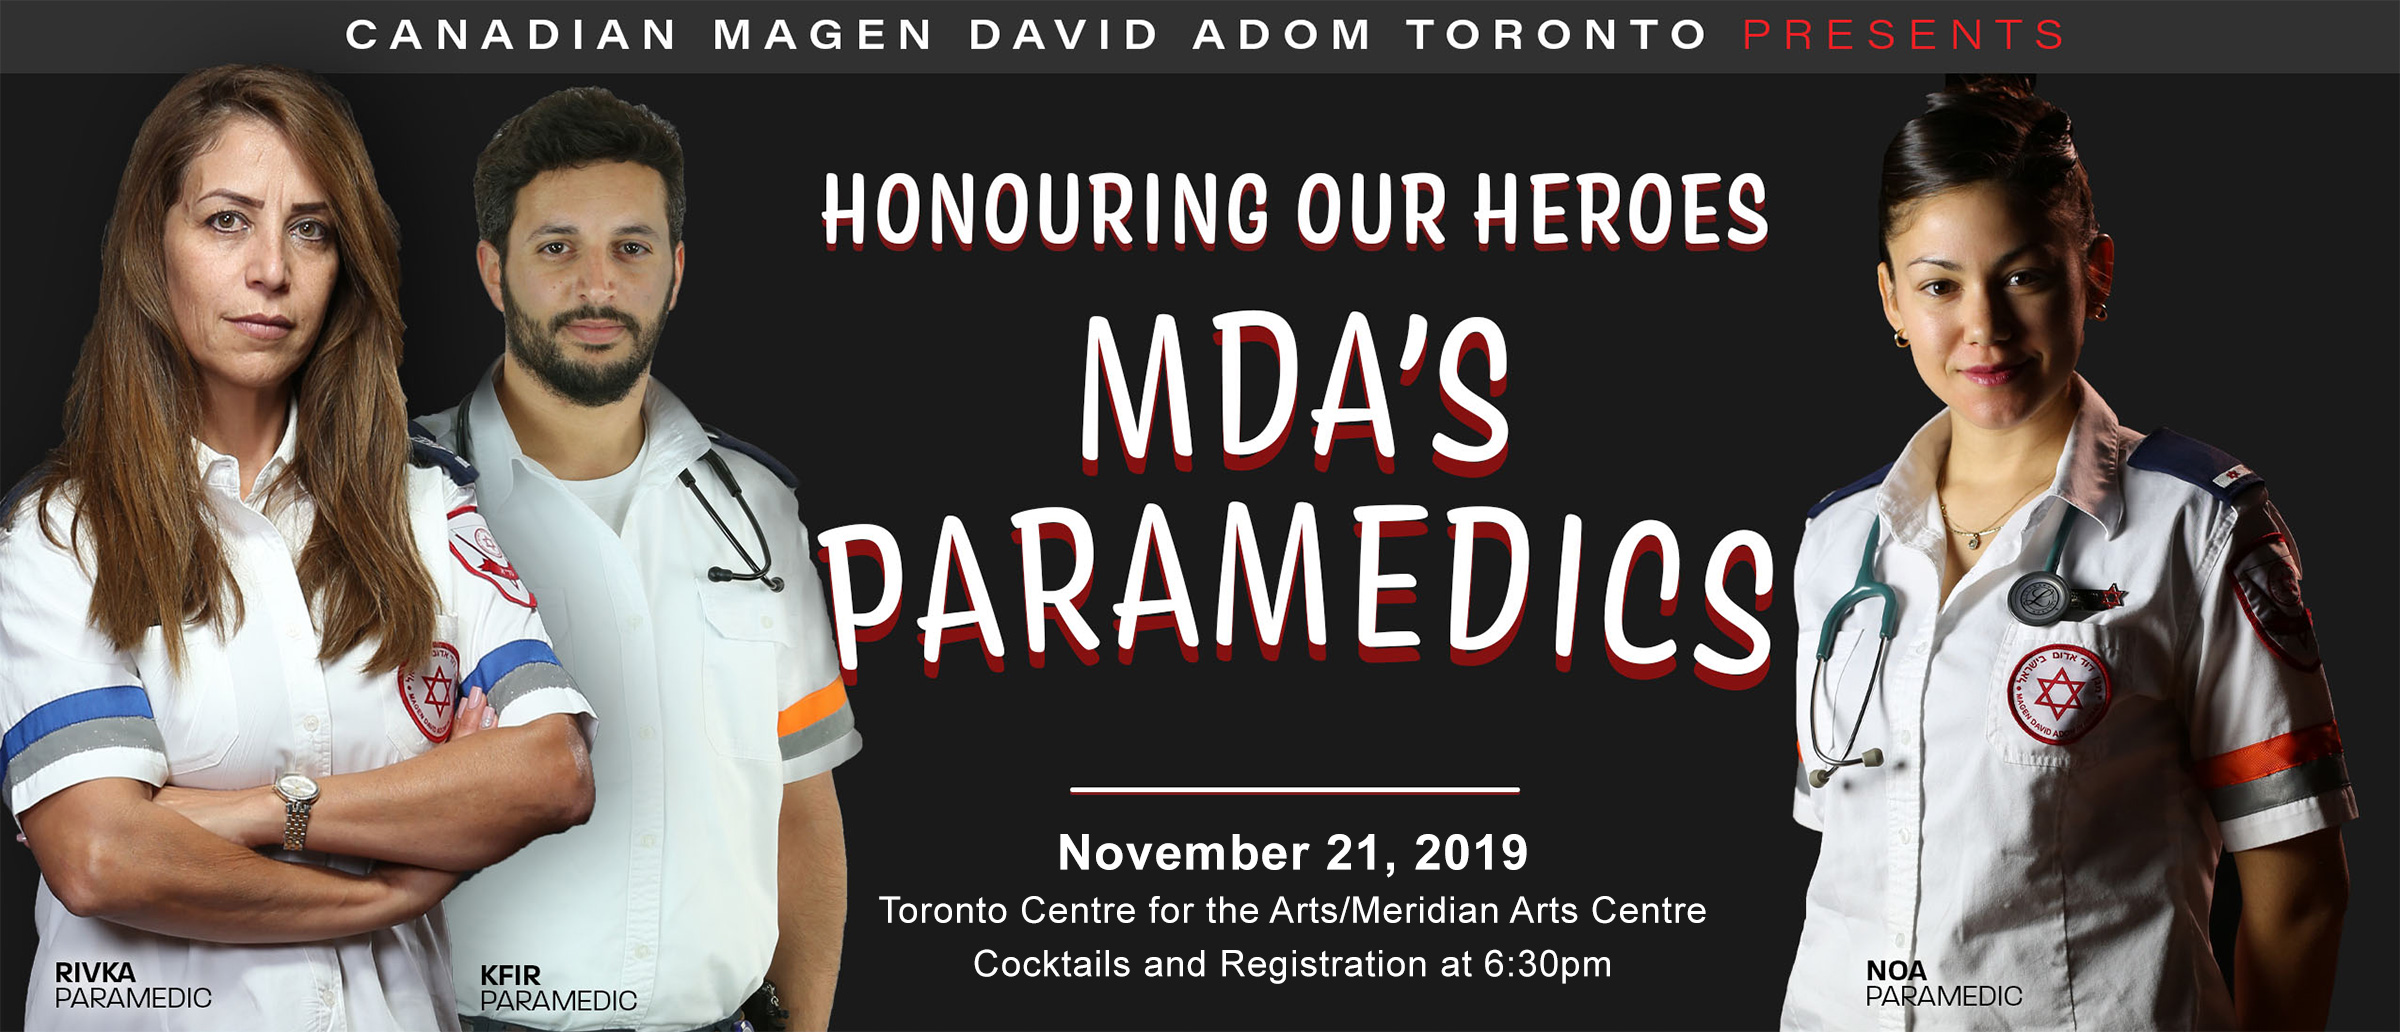 Canadian Magen David Adom Toronto Presents...Honouring our Heroes...Magen David Adom's Paramedics - November 21, 2019 - The Toronto Centre for the Arts